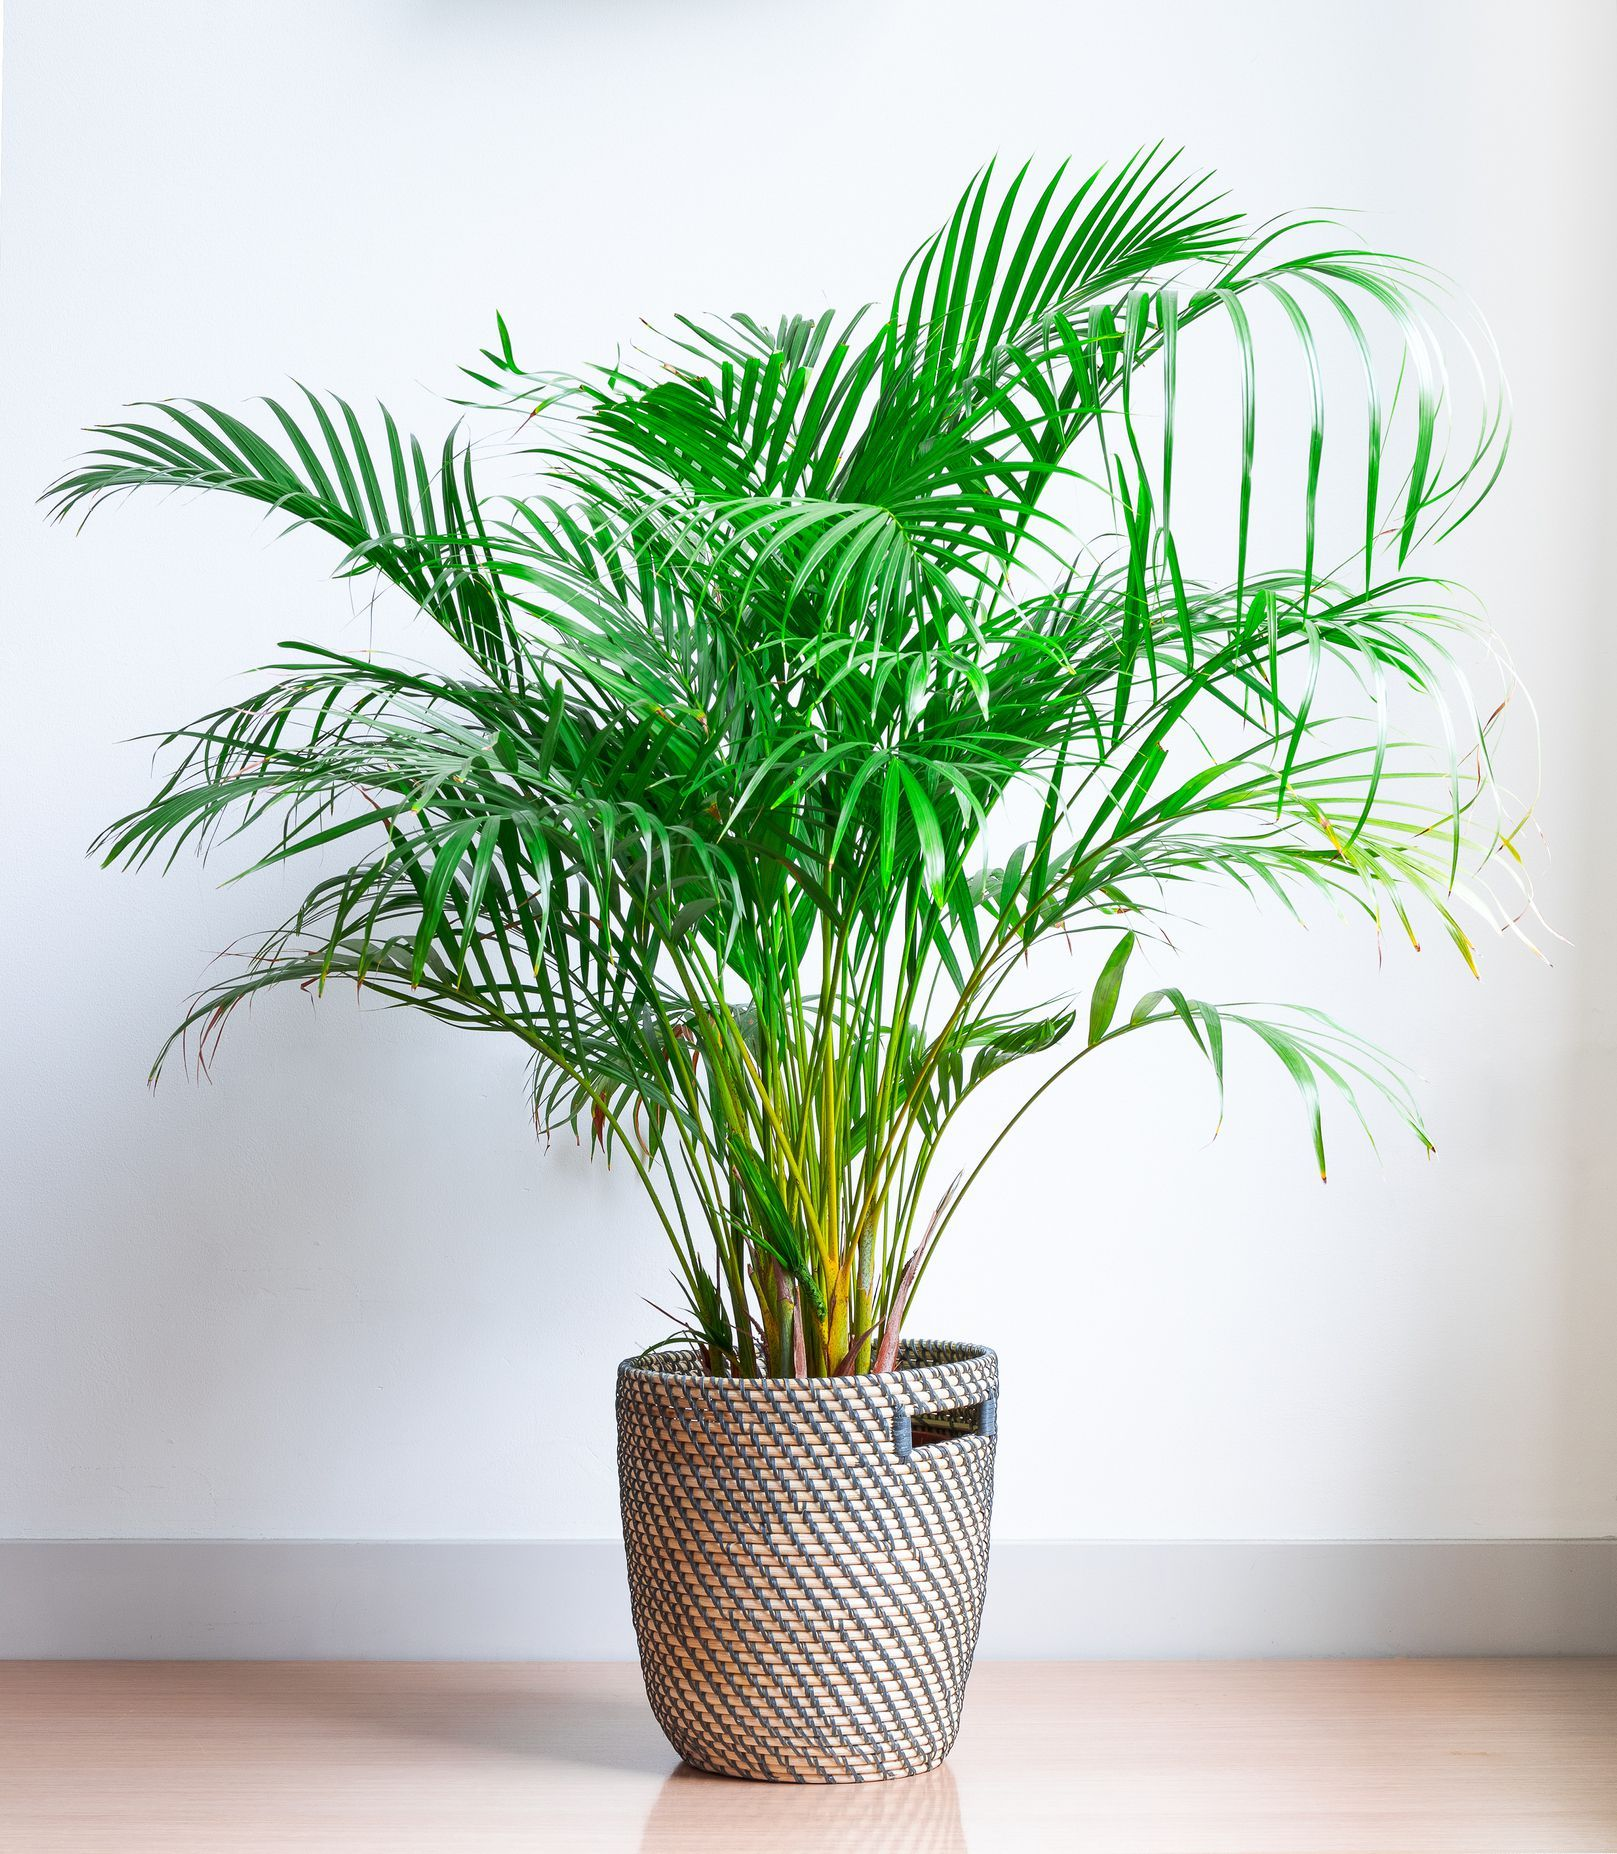 Chrysalidocarpus Space For Life Areca Palm Chrysalidocarpus Lutescens